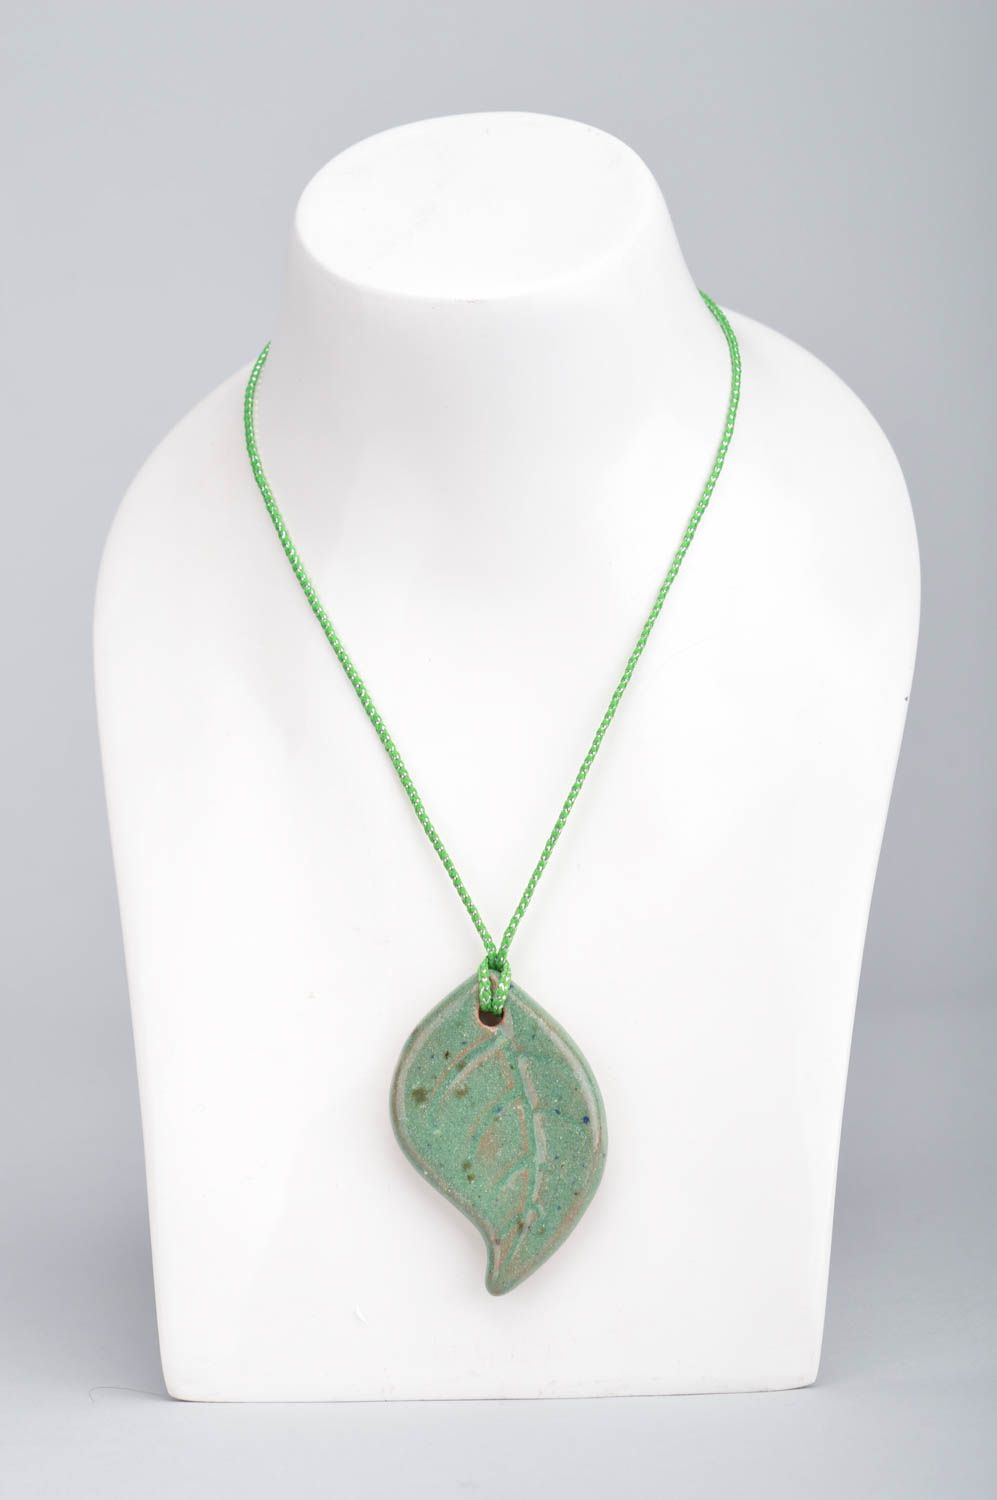 Handmade ceramic small pendant in the shape of light green leaf on a cord photo 5